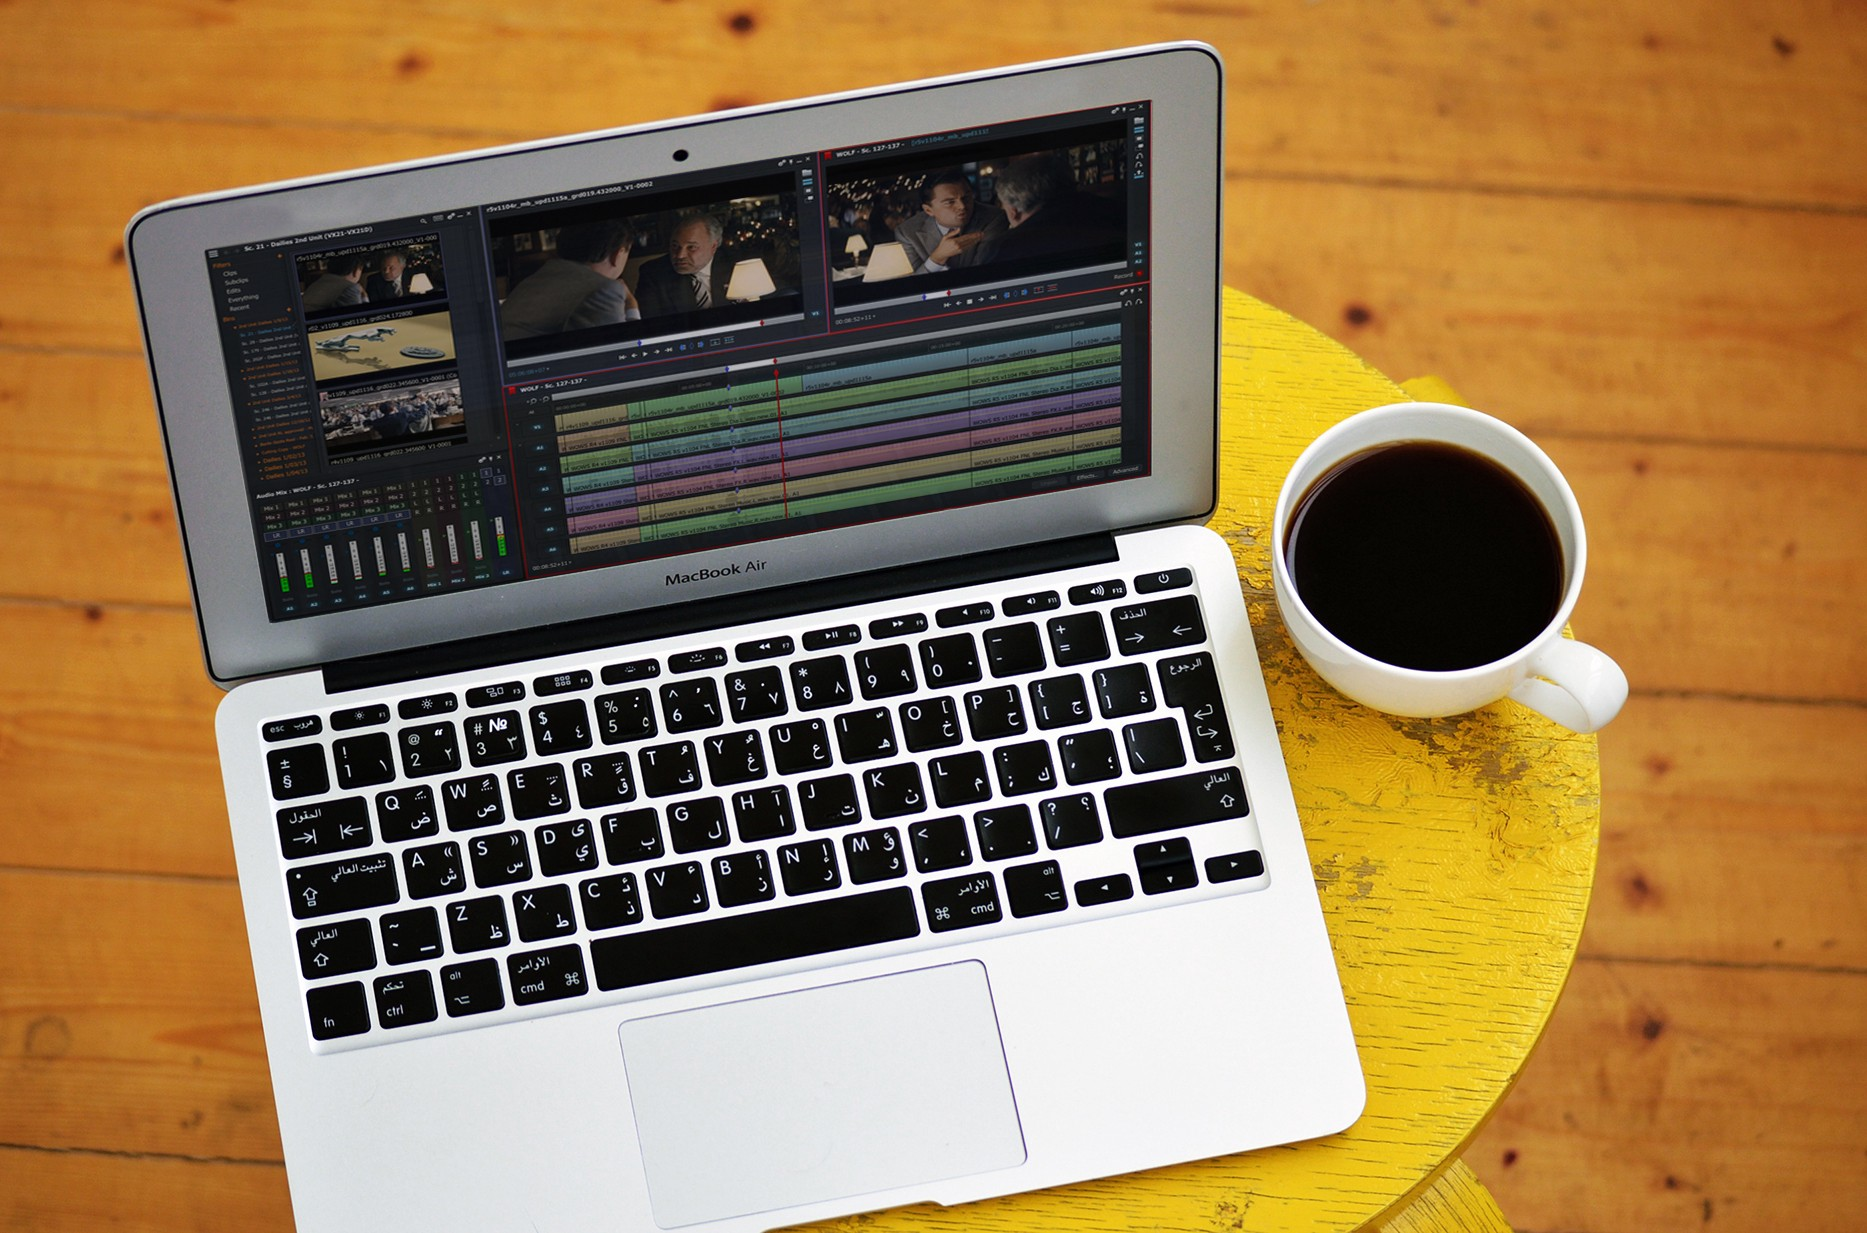 Heres A Piece Of Advice When Choosing Video Editing Software Dont Look For The Best One Look For The Right One Each Program Has Something Special To